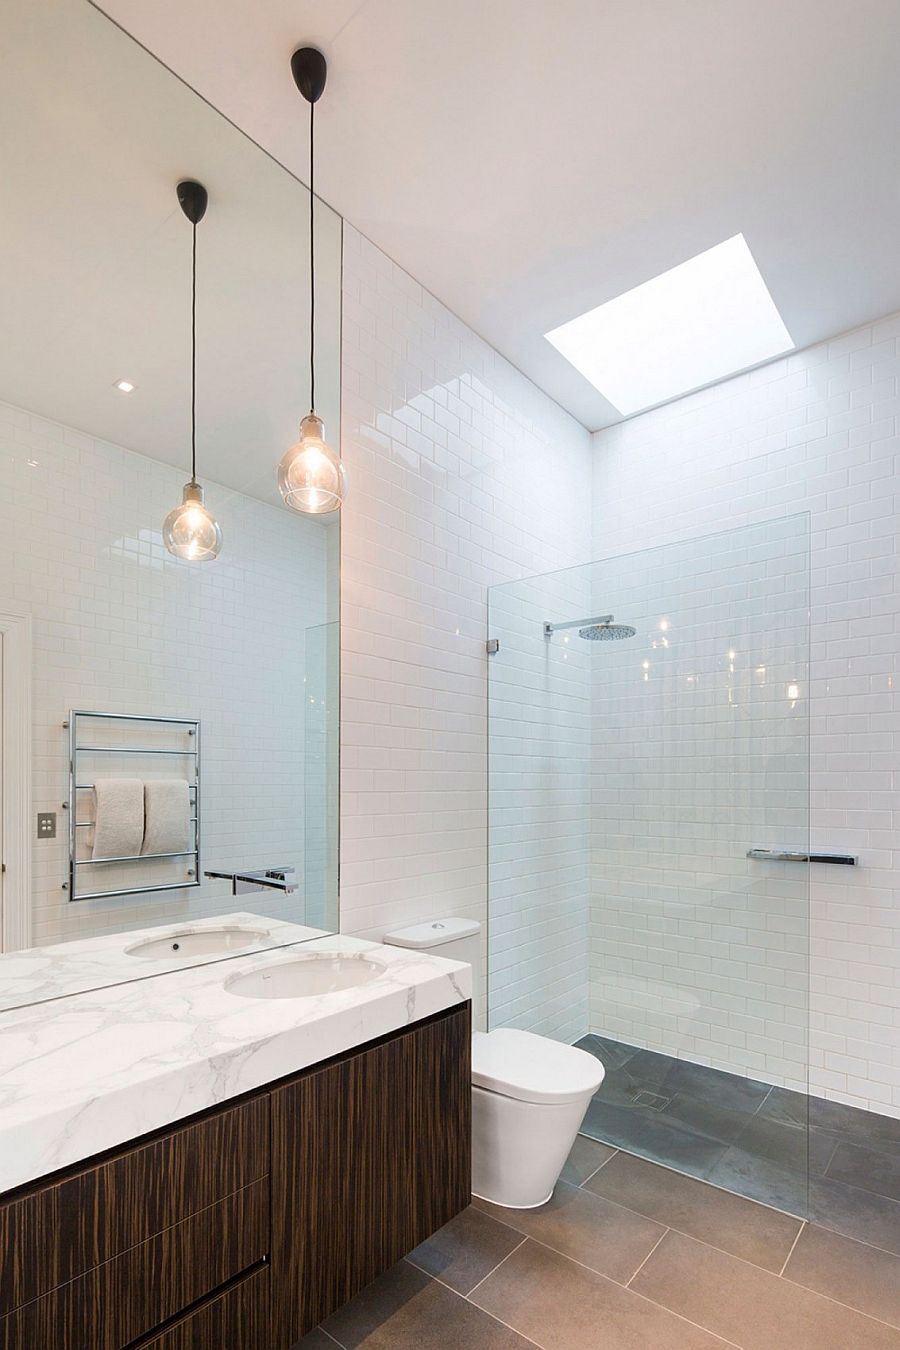 Skylight brings natural light into white, contemporary bathroom